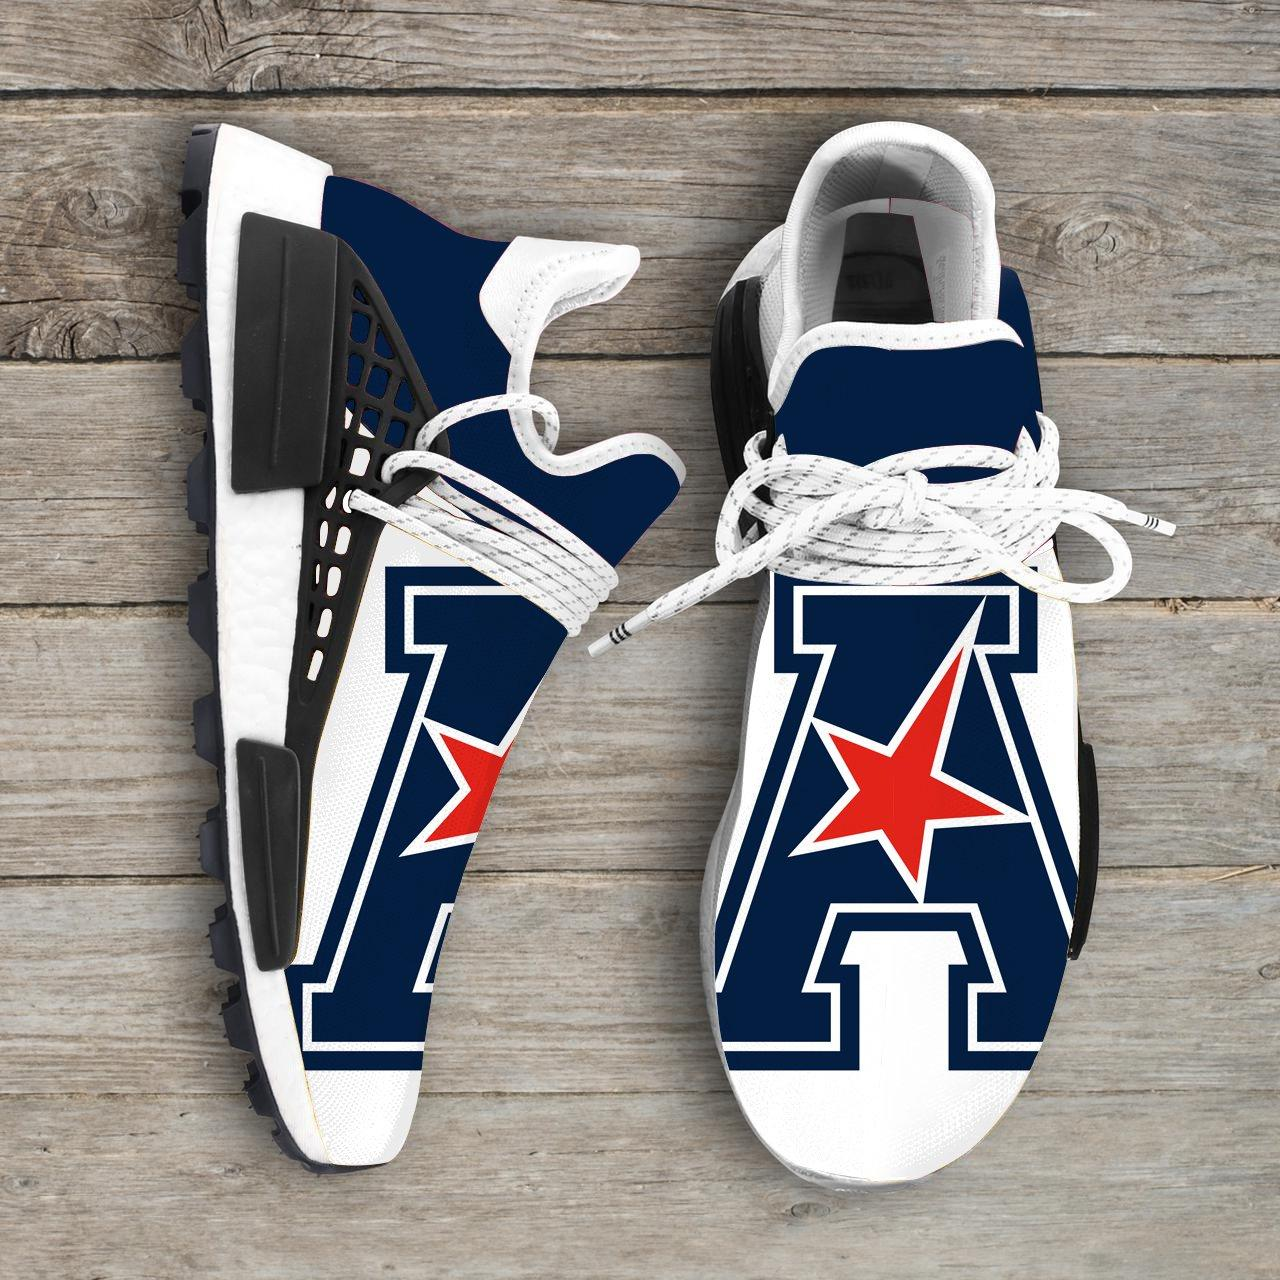 American Athletic Conference NCAA NMD Human Race Sneakers Sport Shoes Shoes 2020